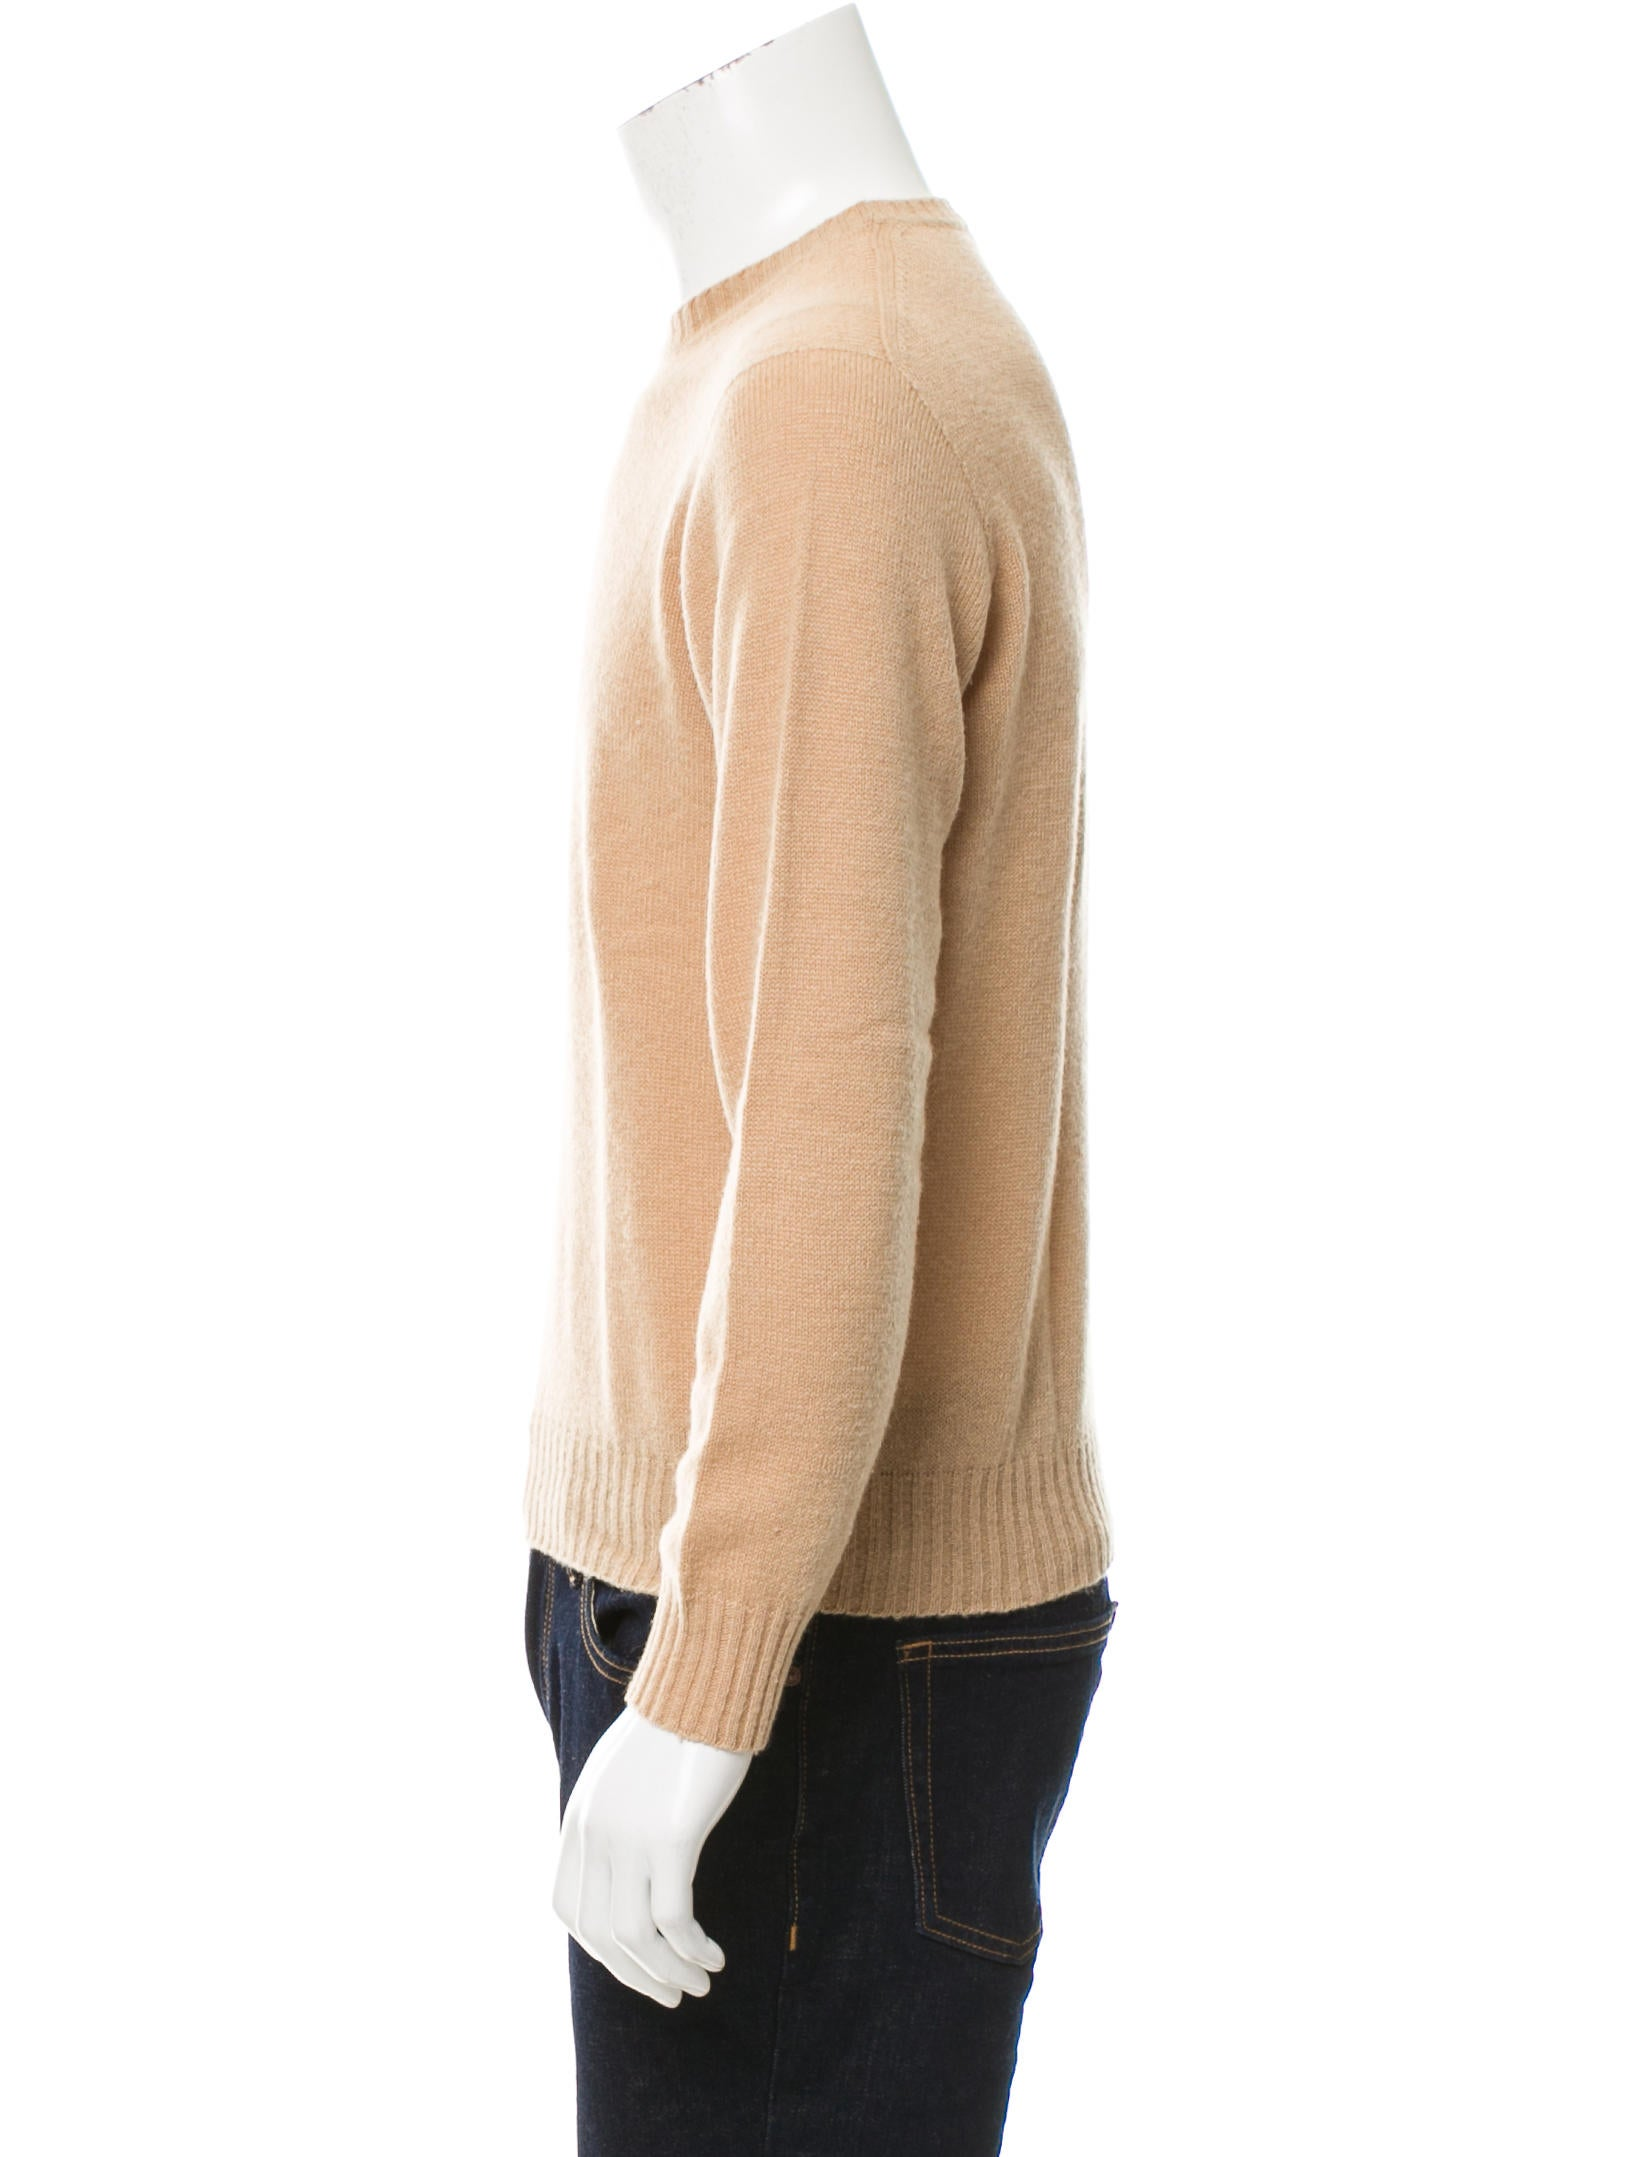 Malo Cashmere Crew Neck Sweater - Clothing